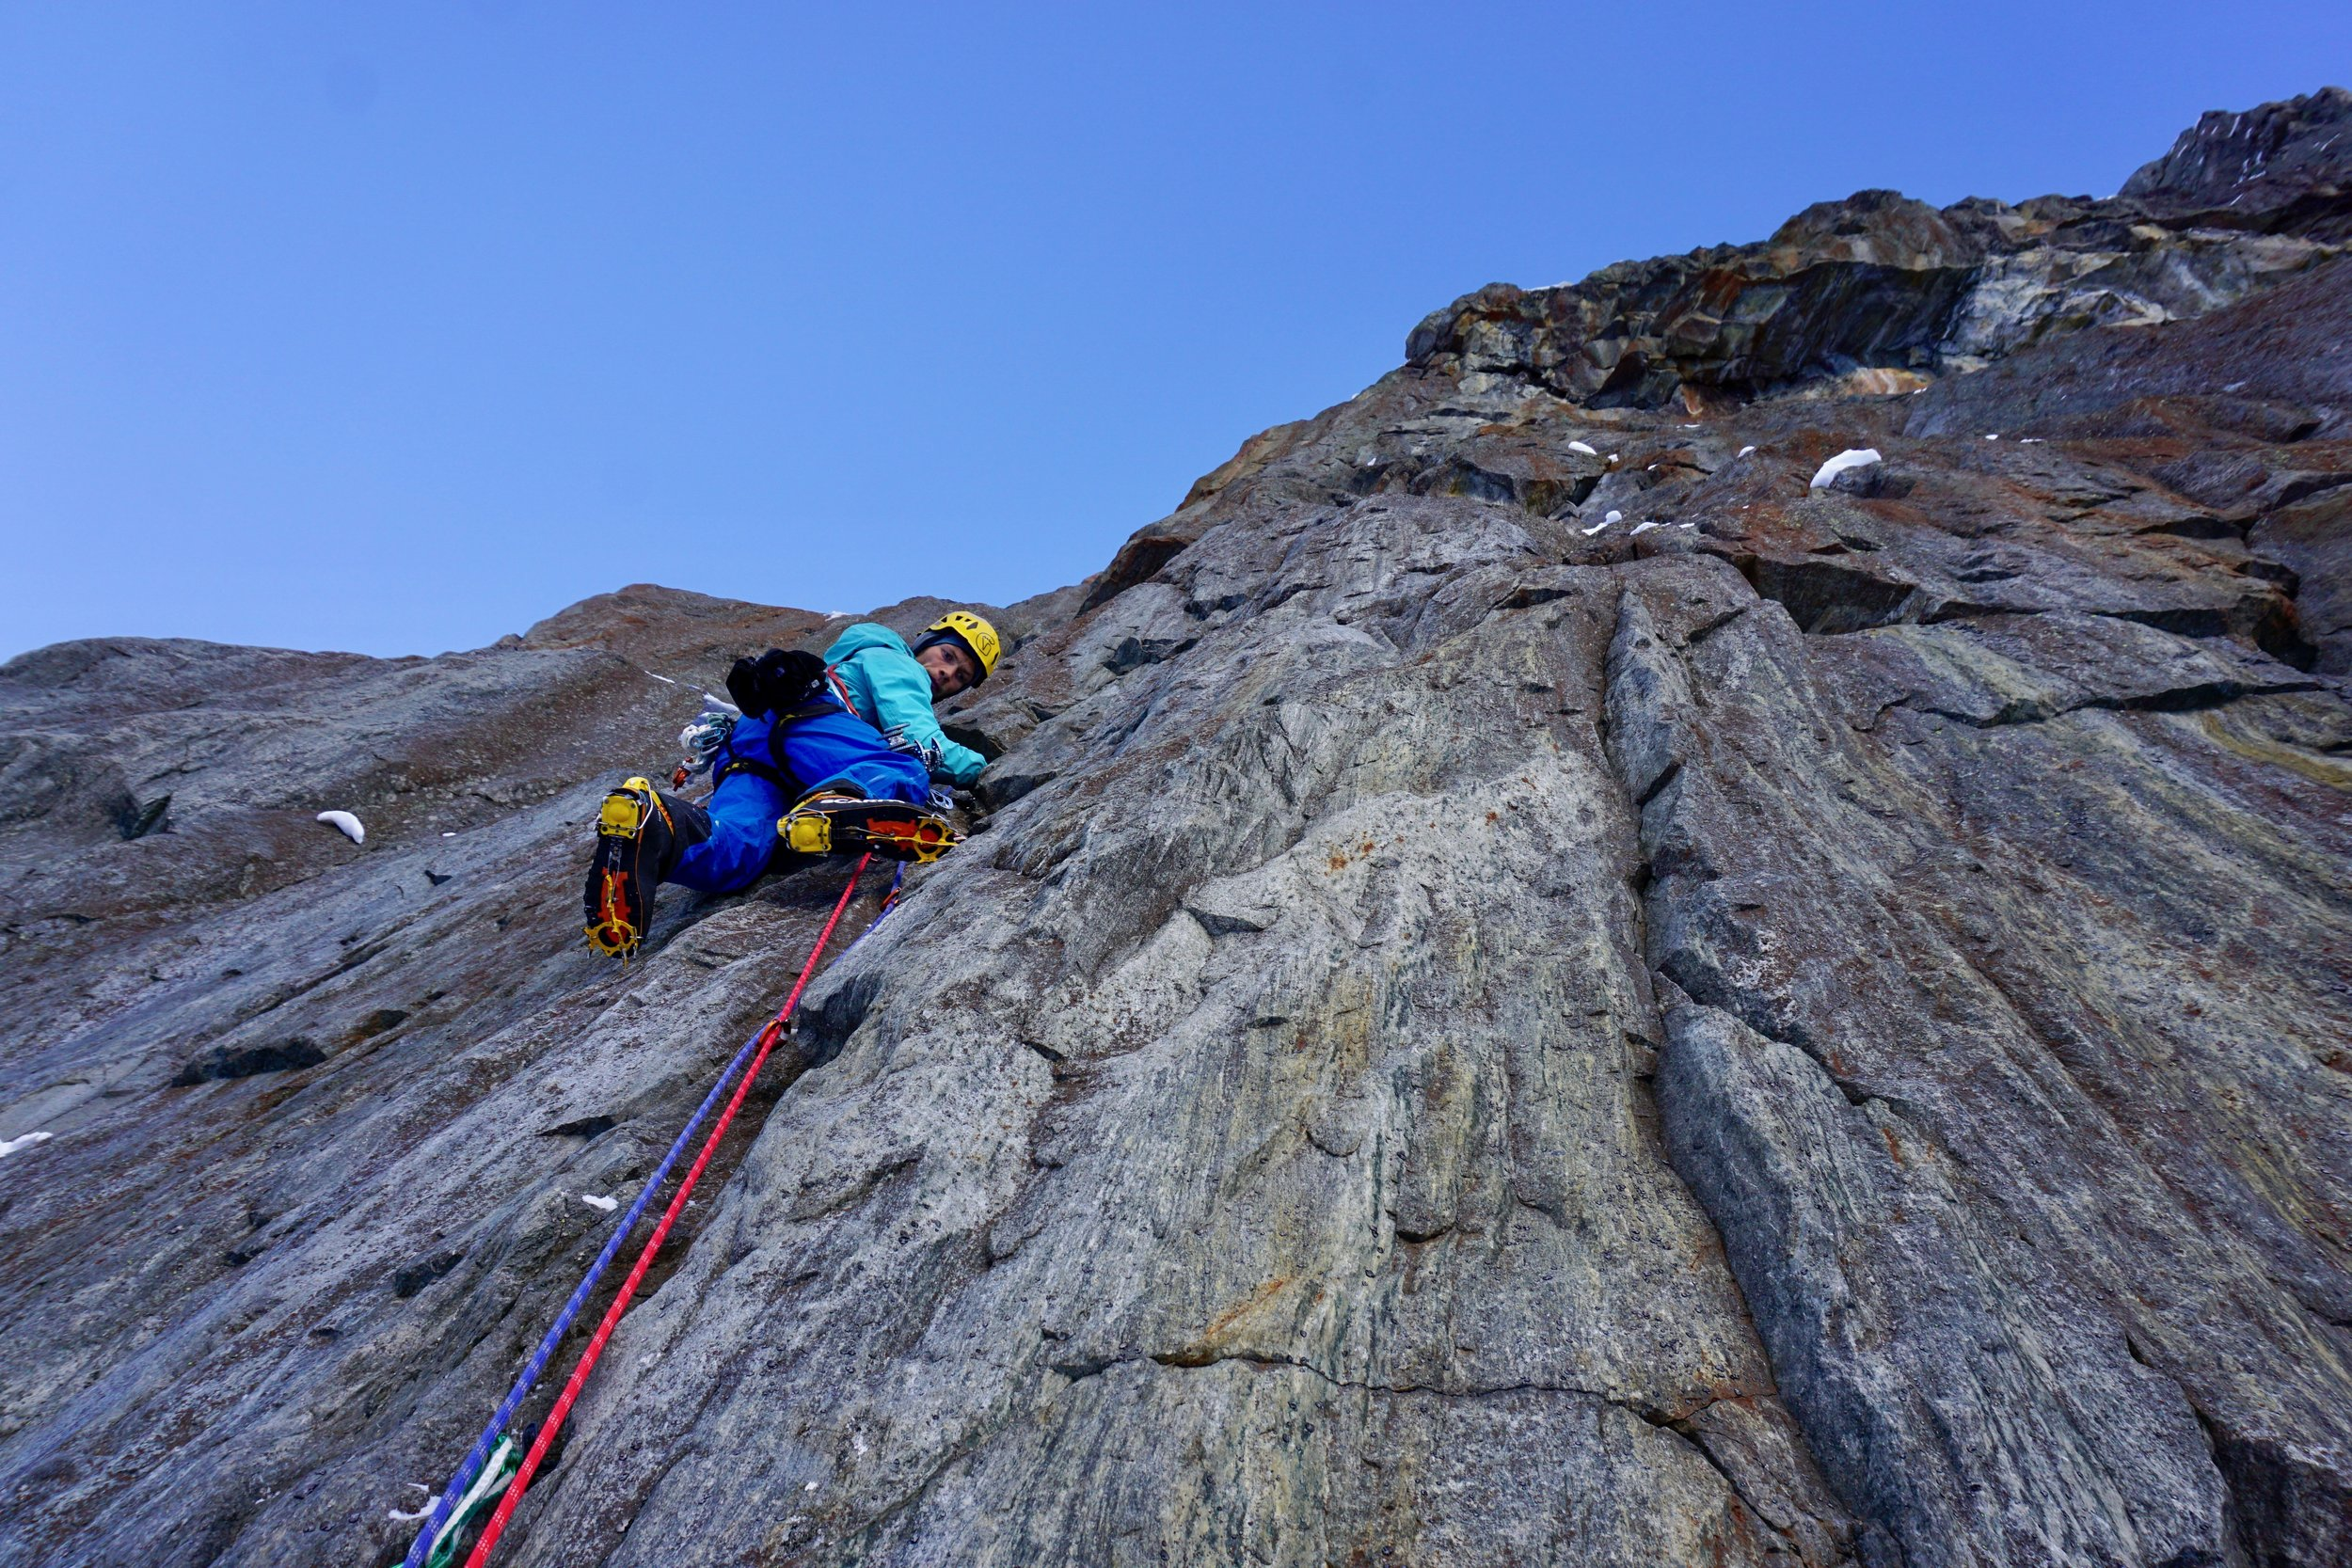 Will Sim climbing P2 of  Flame Libre (M6+) at Rive Gauche, Argentiere, Chamonix. It was a shame not to 'go big' with this weather window but hey, next time.